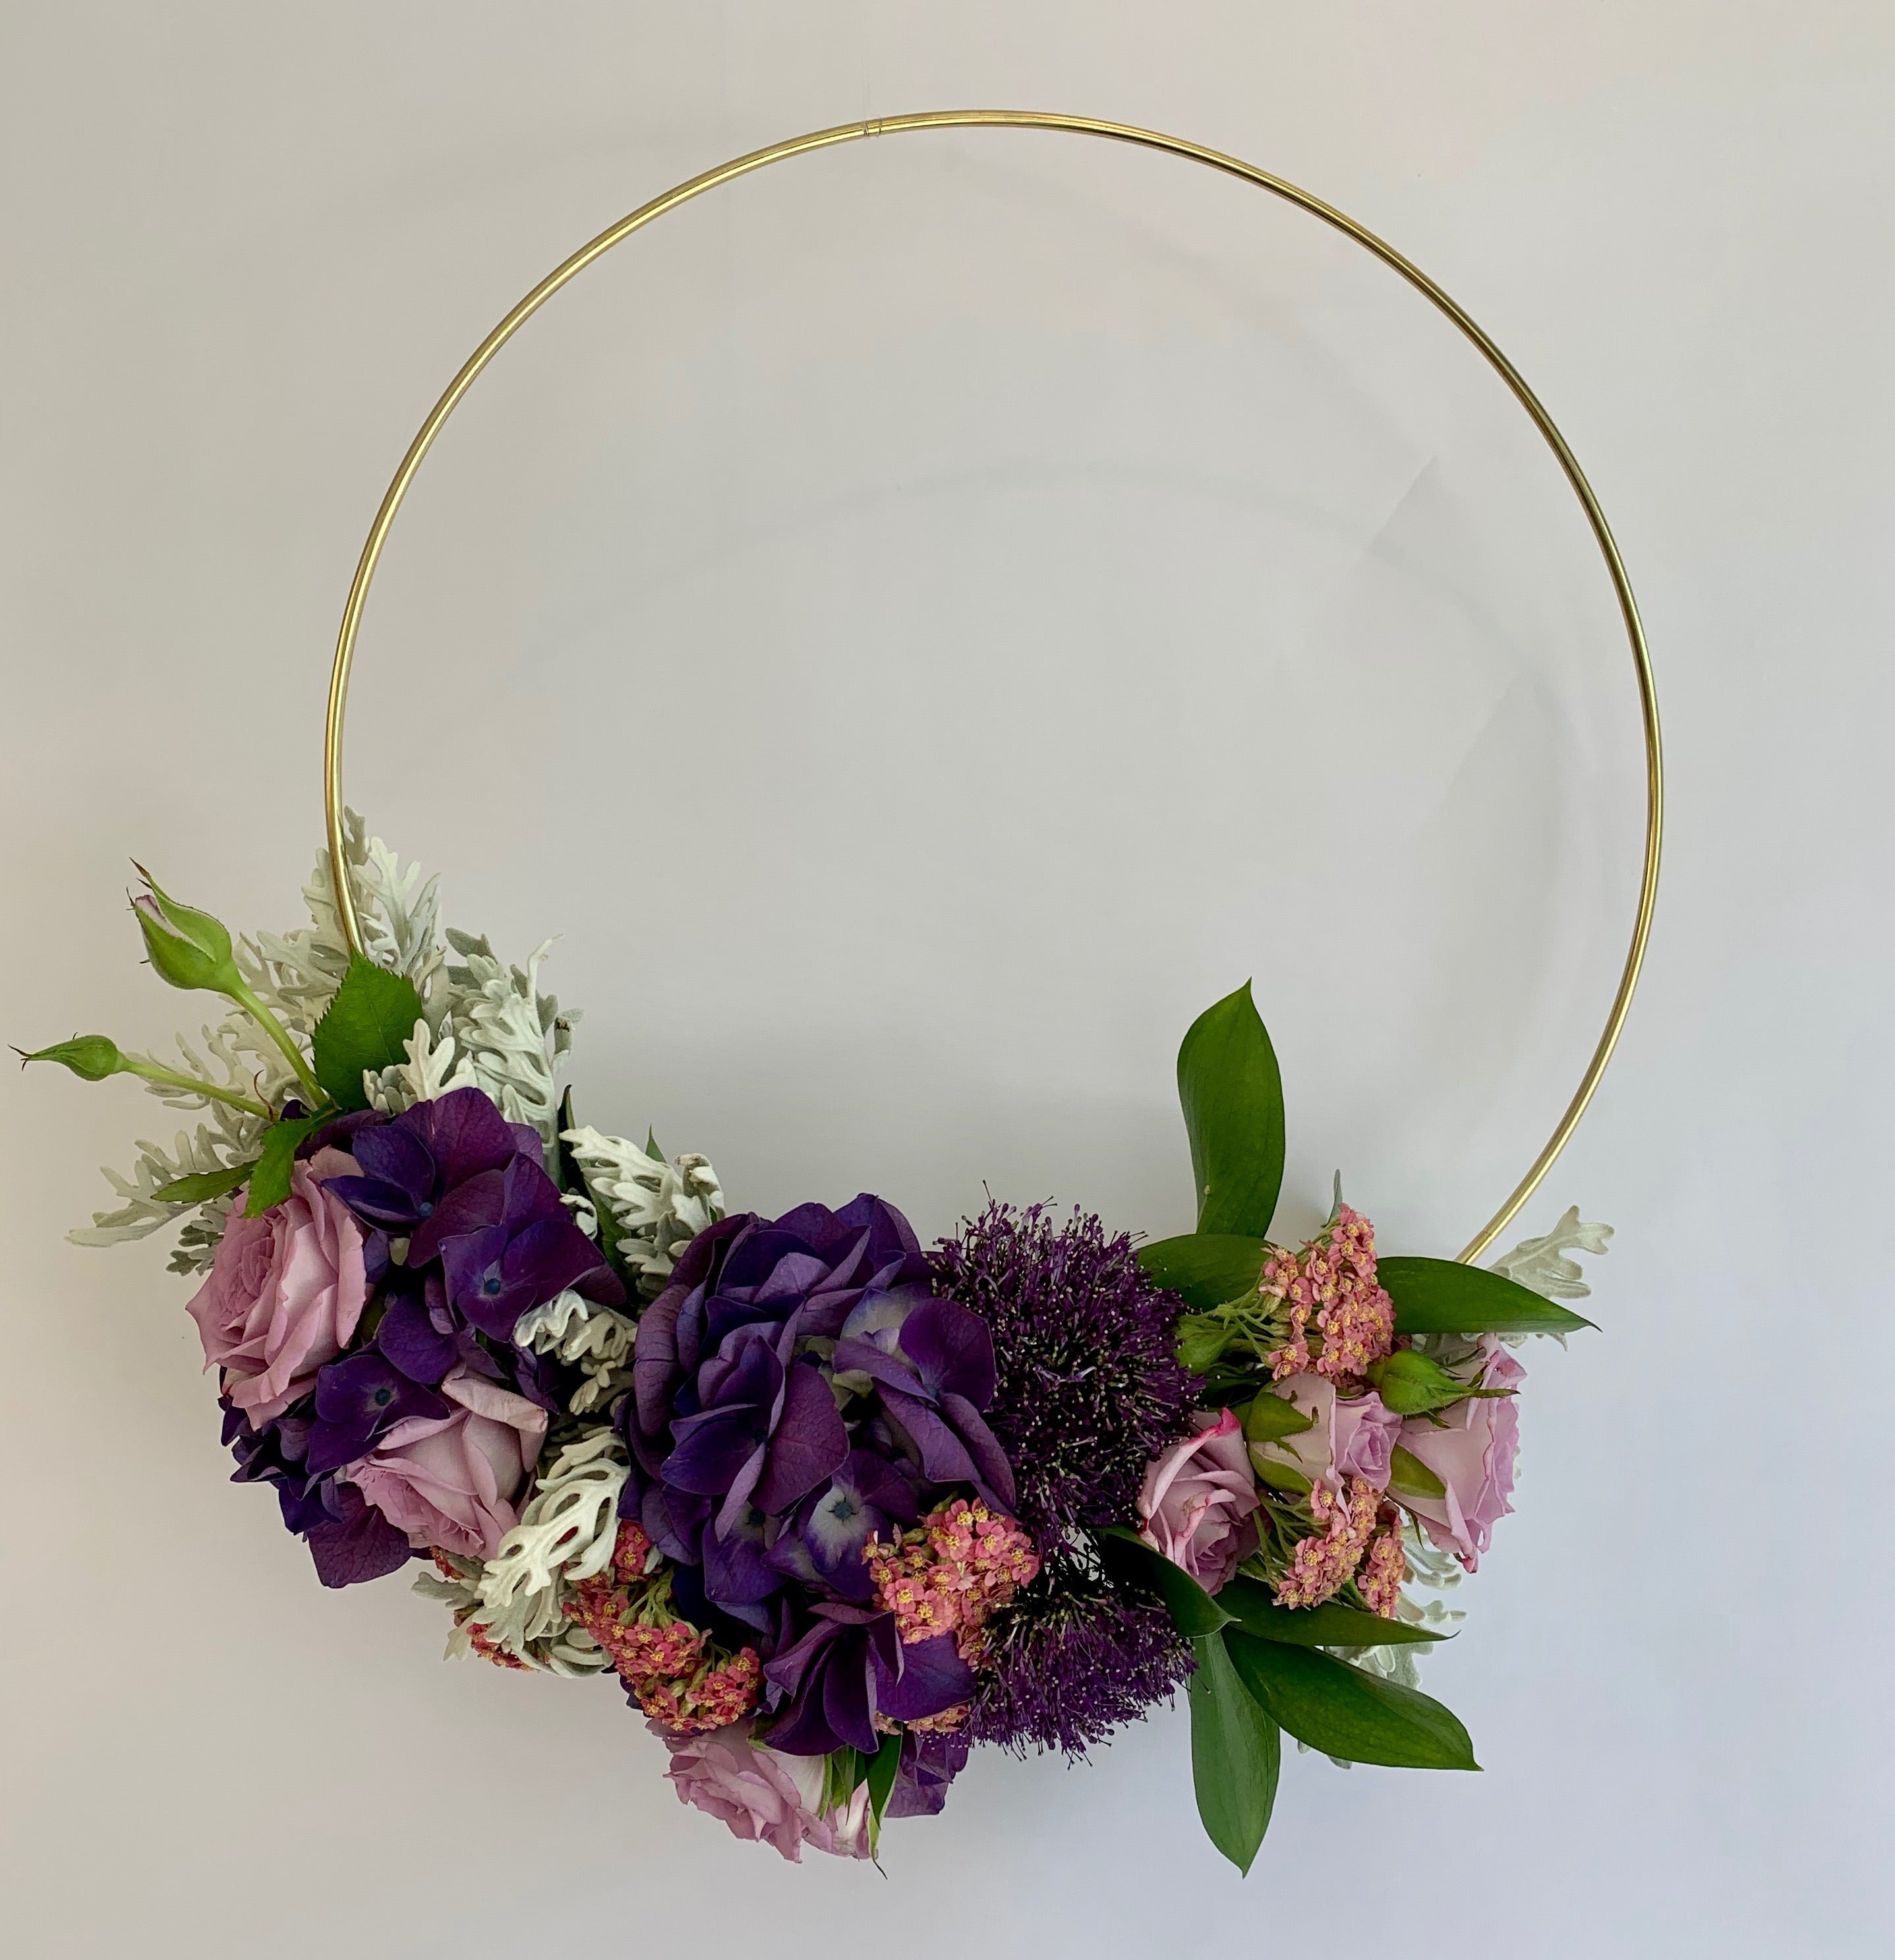 'Summer on a Hoop' Mini Workshop - New Dates coming soon